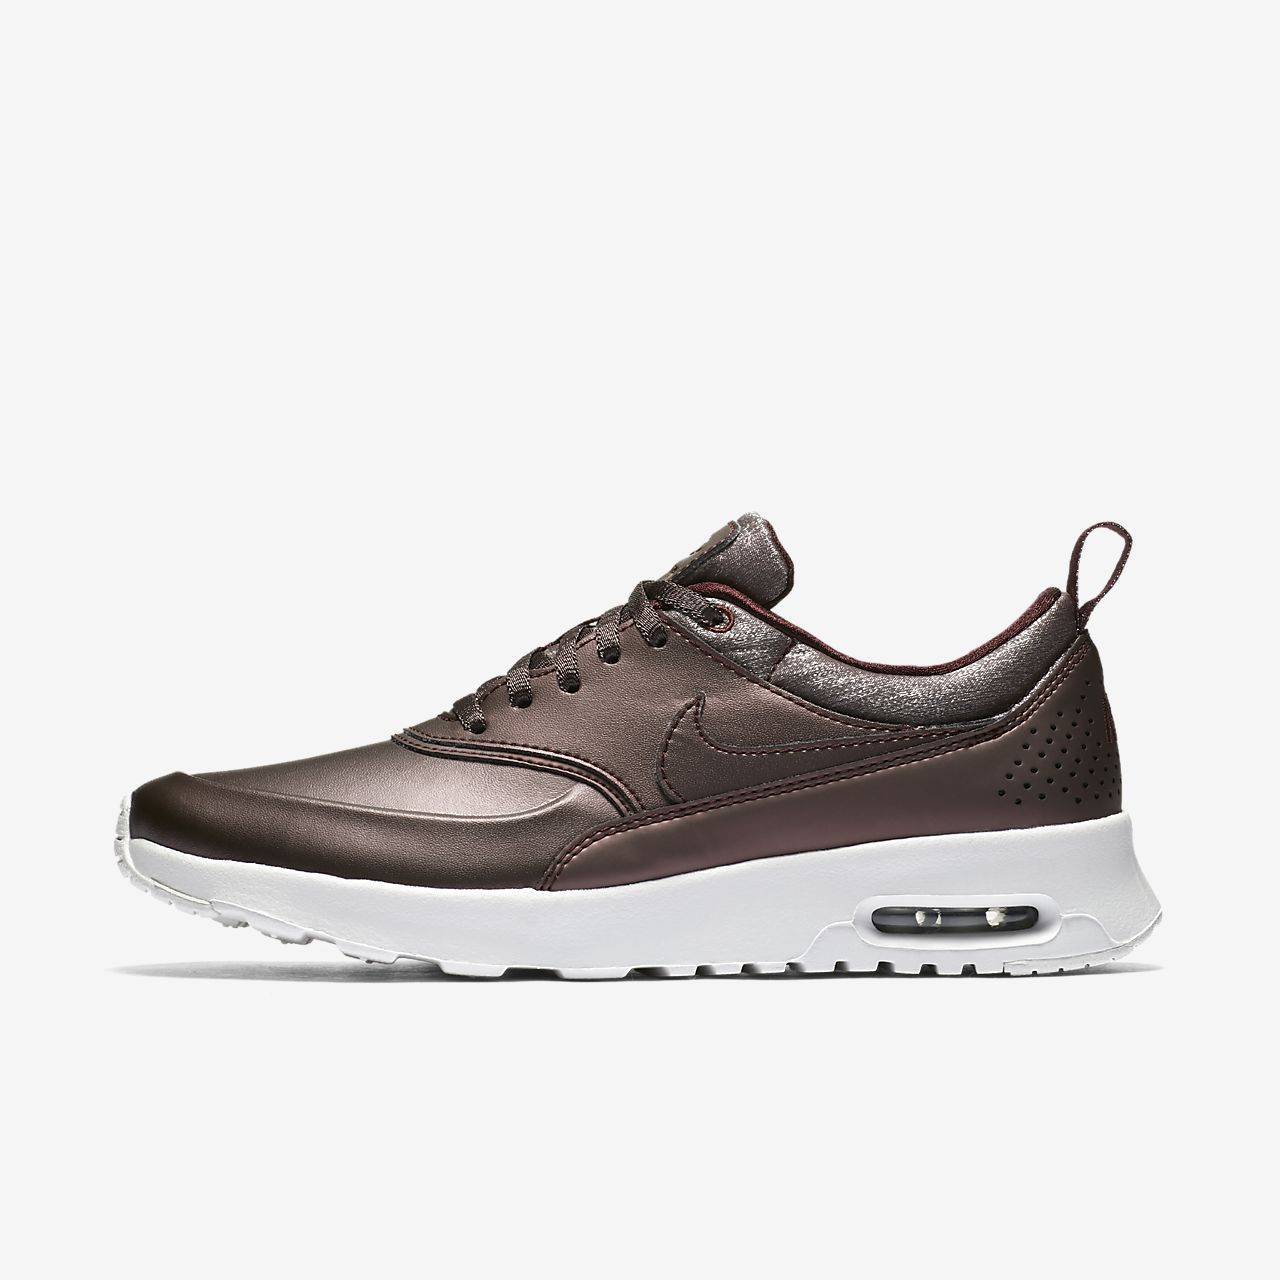 nike air max thea green leather nz